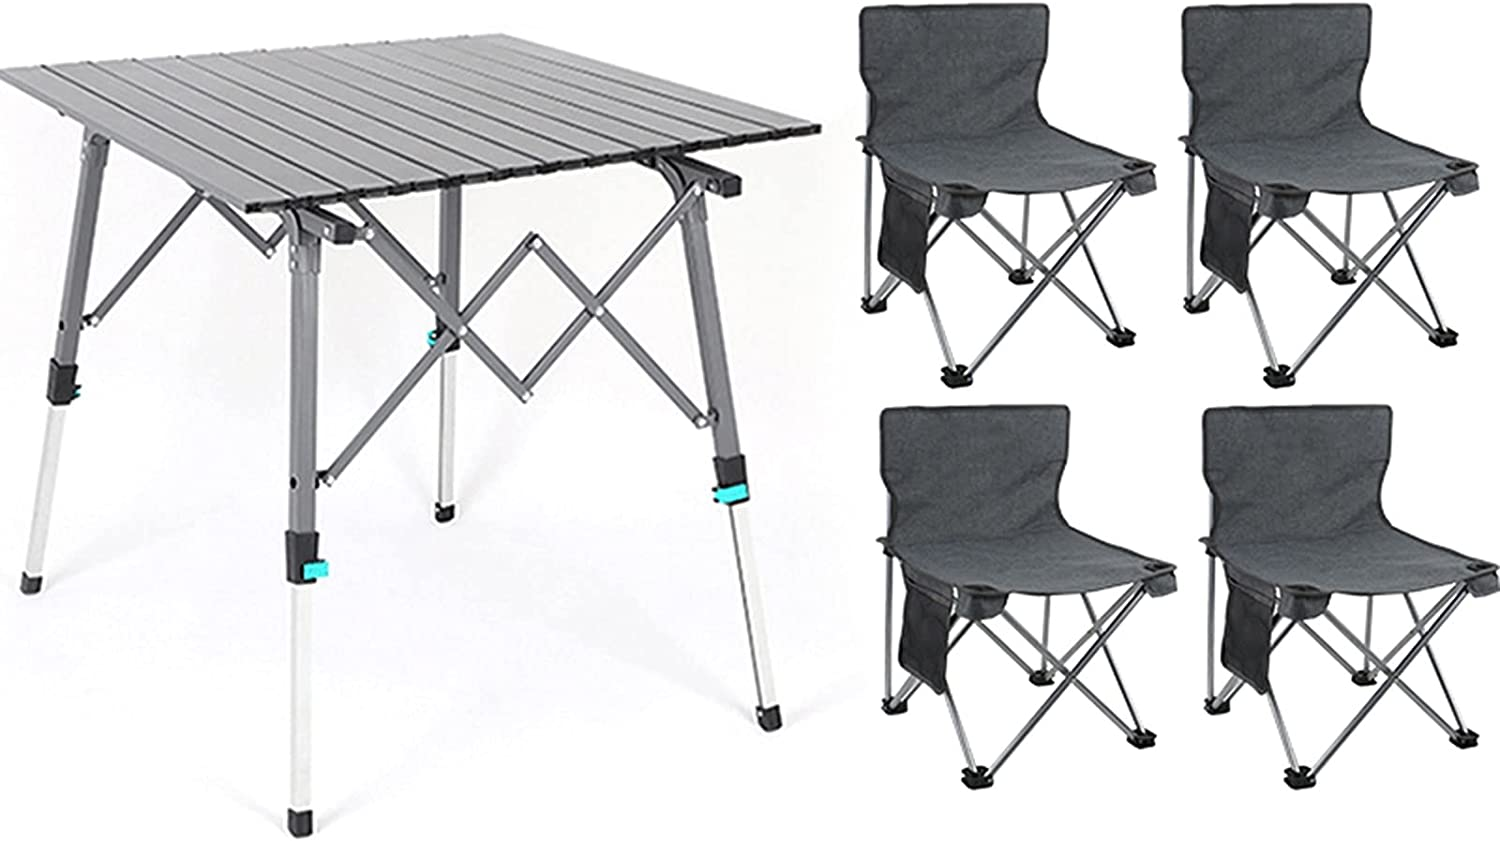 Camping Table Chairs Aluminum Folding Colorado Springs Mall Special sale item The and Chair H Set